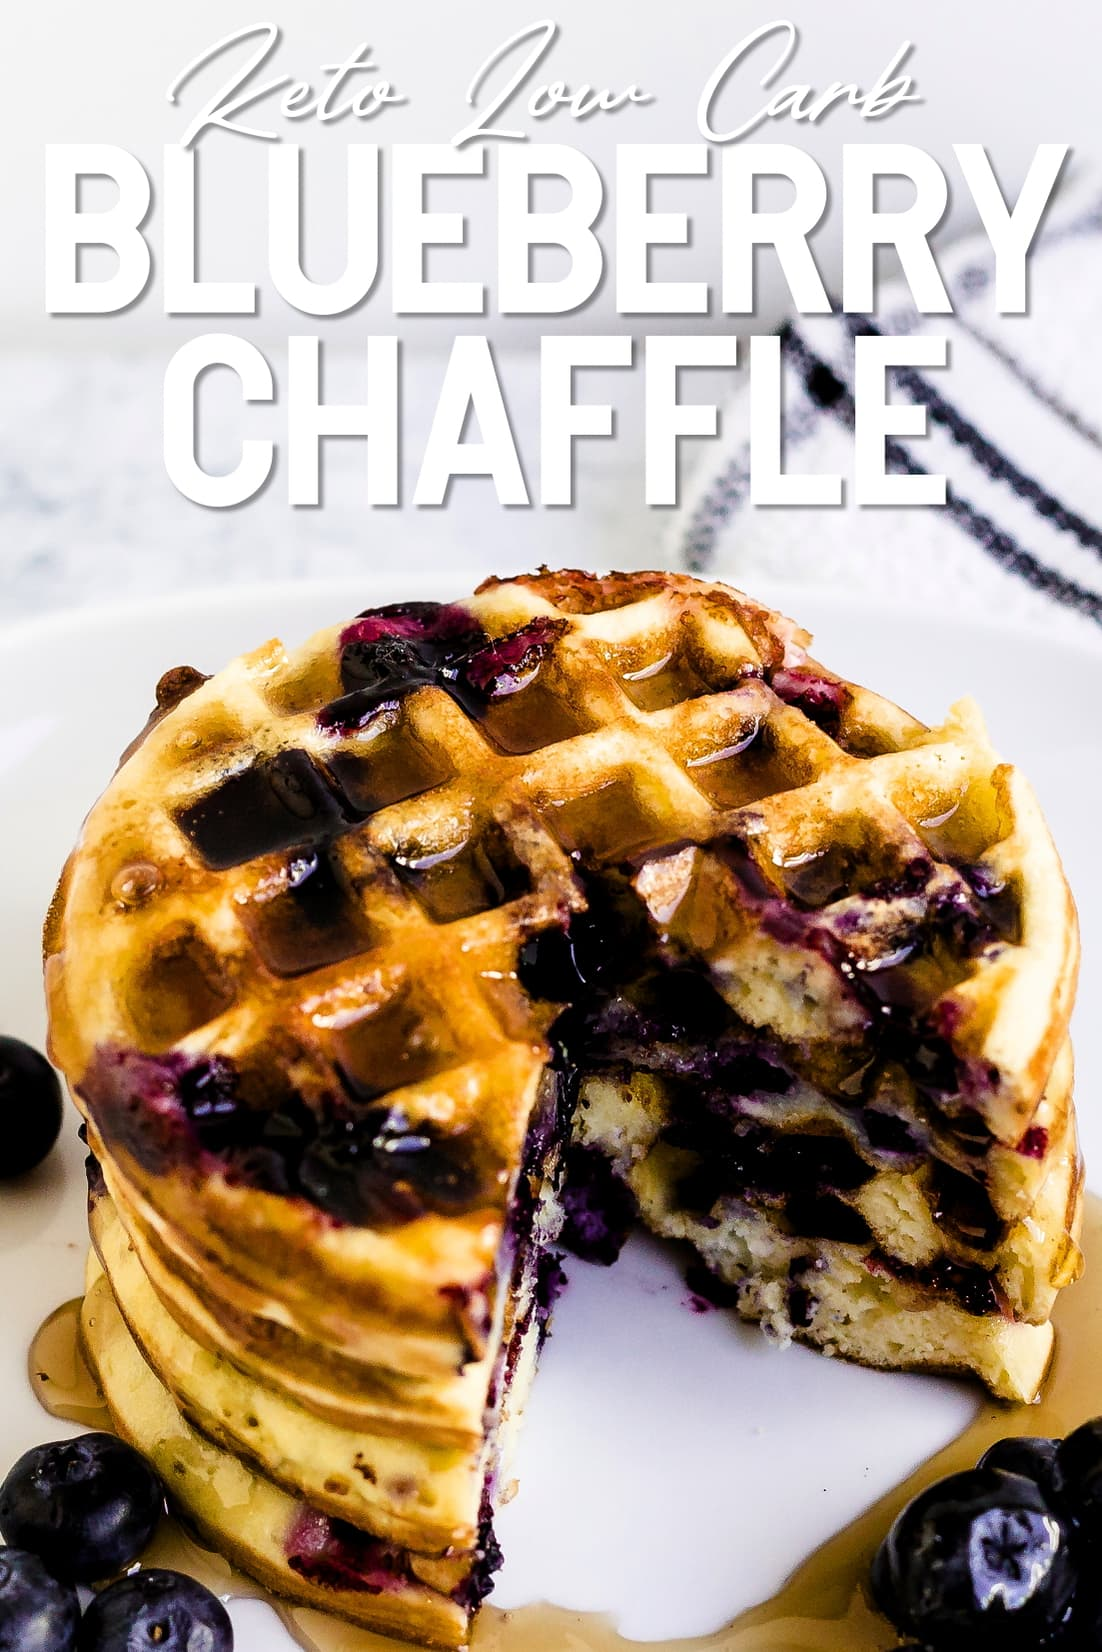 Keto Blueberry Chaffle with a piece cut out